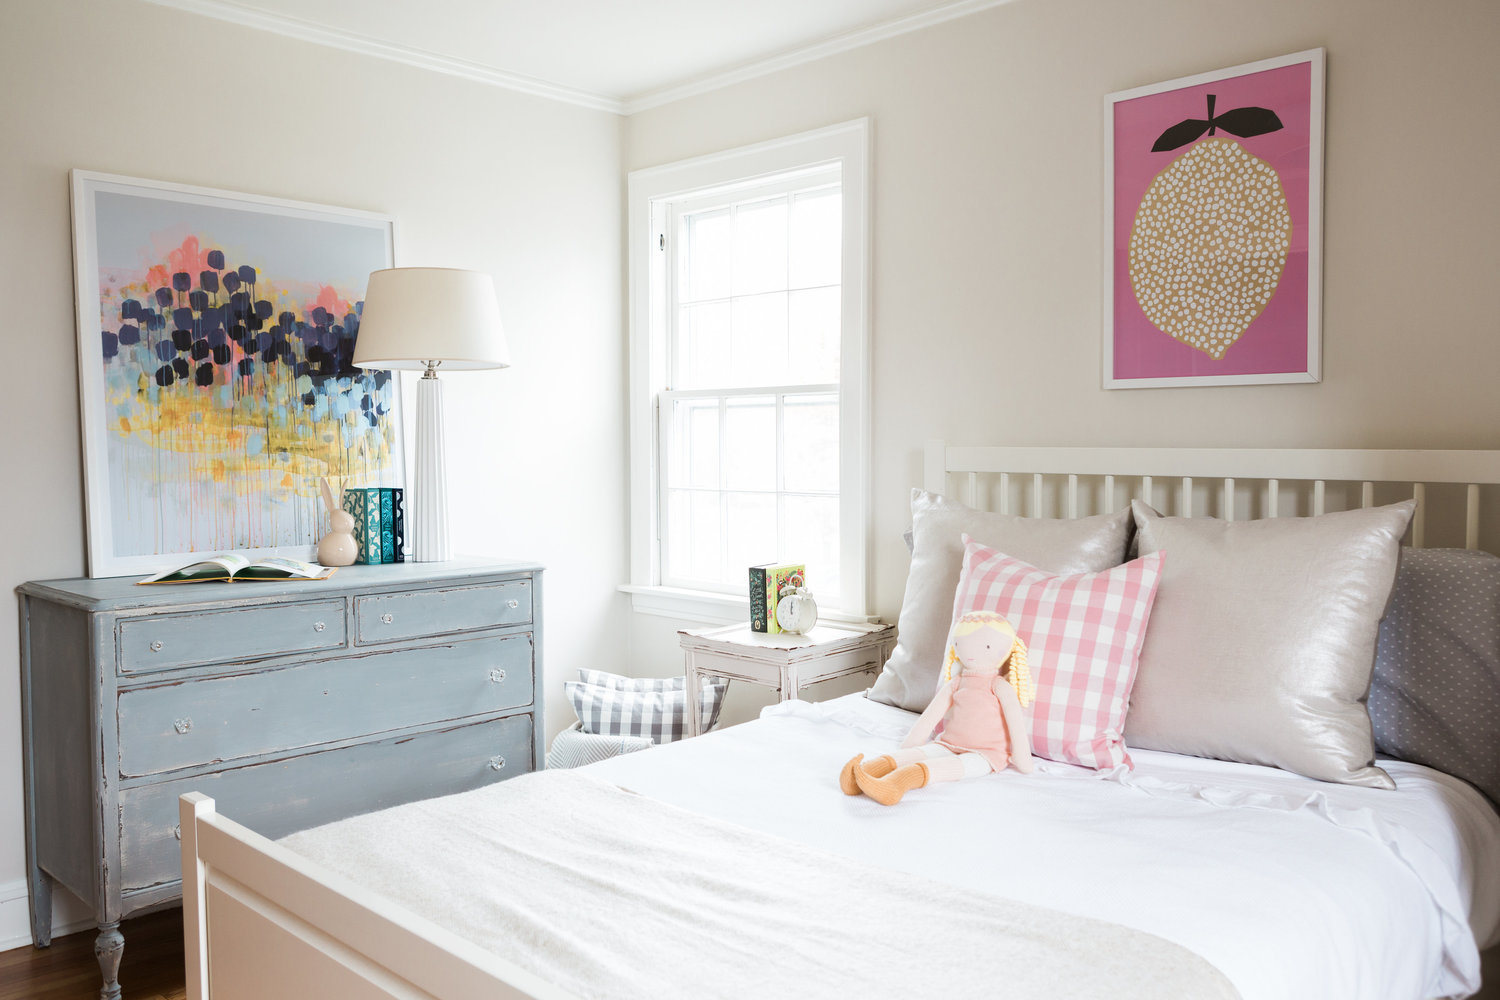 Girl's room with vintage furniture and pink and blue accents.